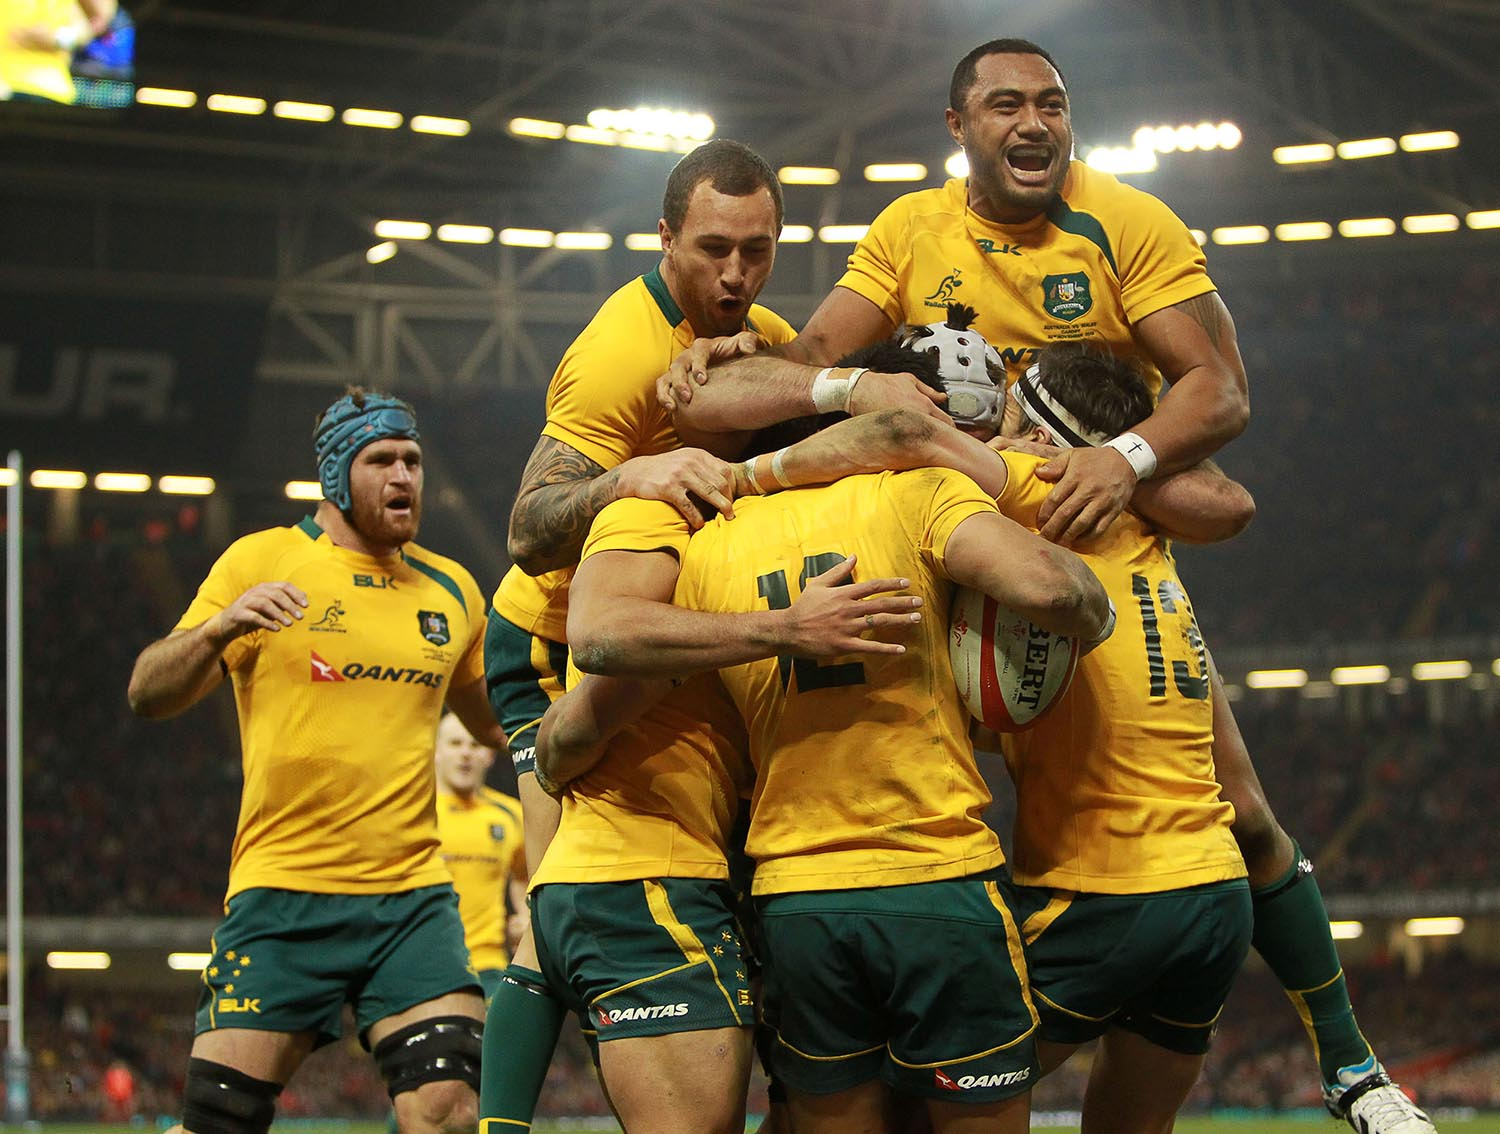 Australian players celebrate a try